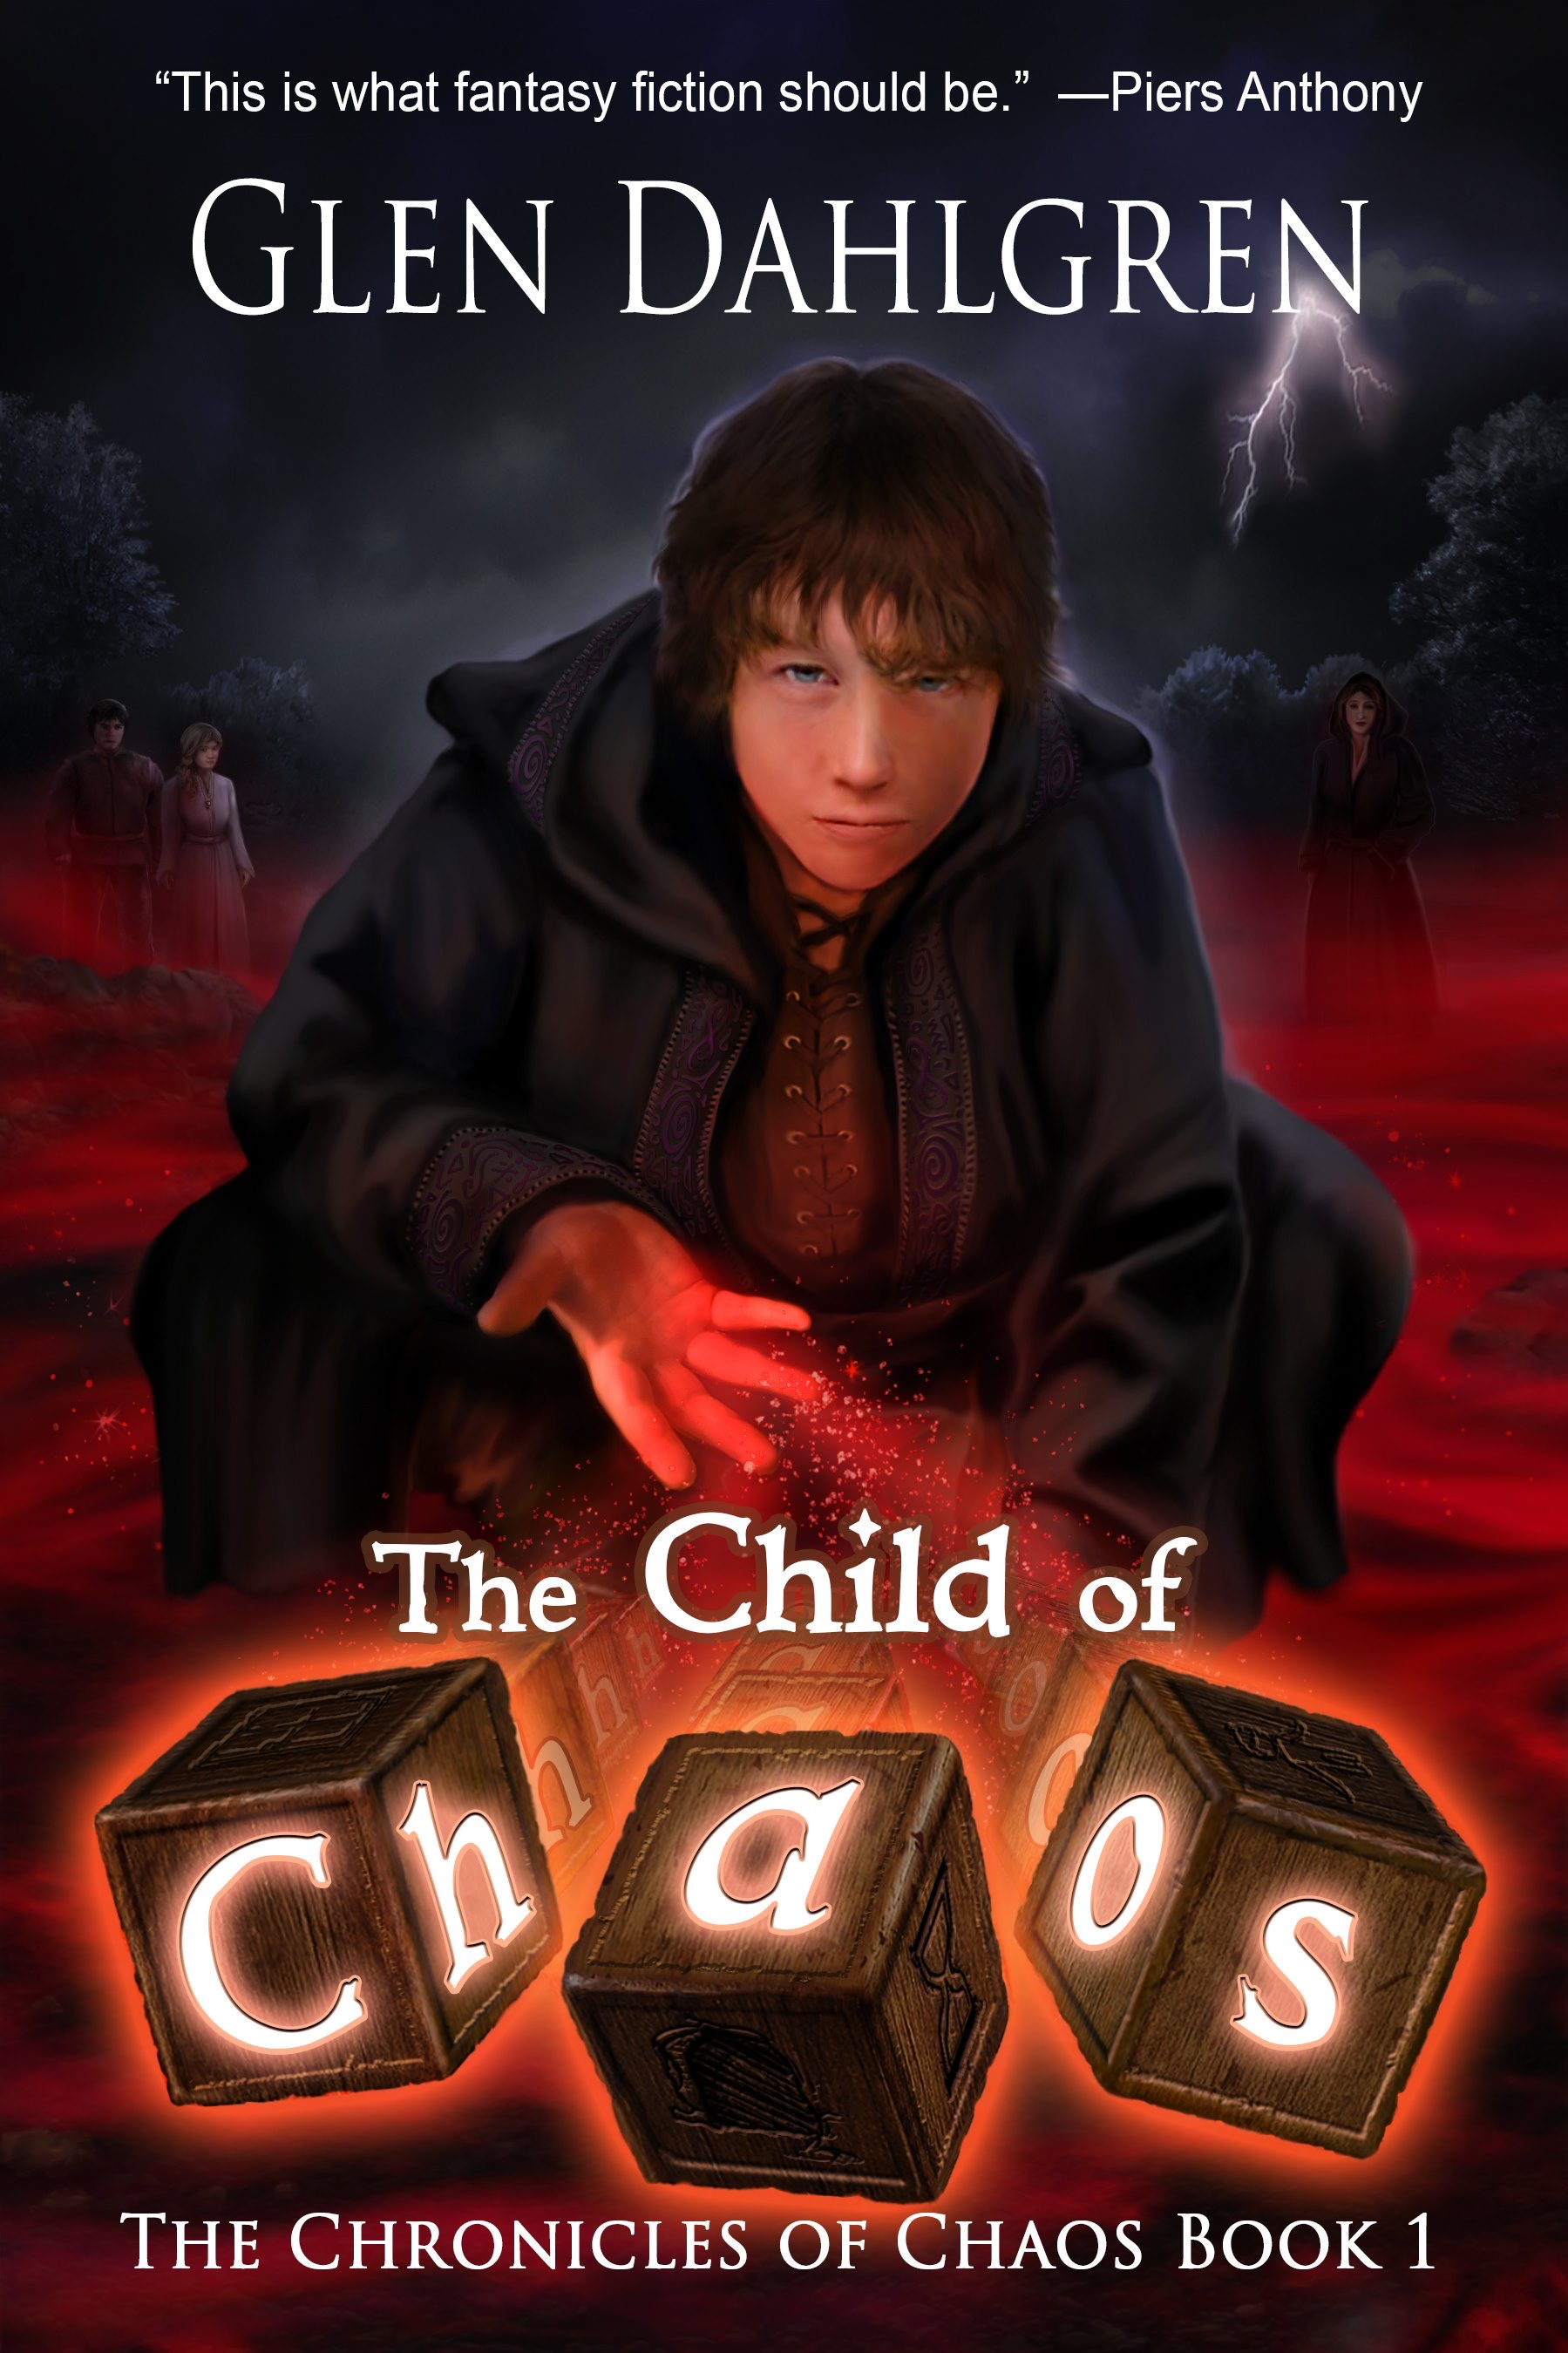 The Child of Chaos (The Chronicles of Chaos, #1)